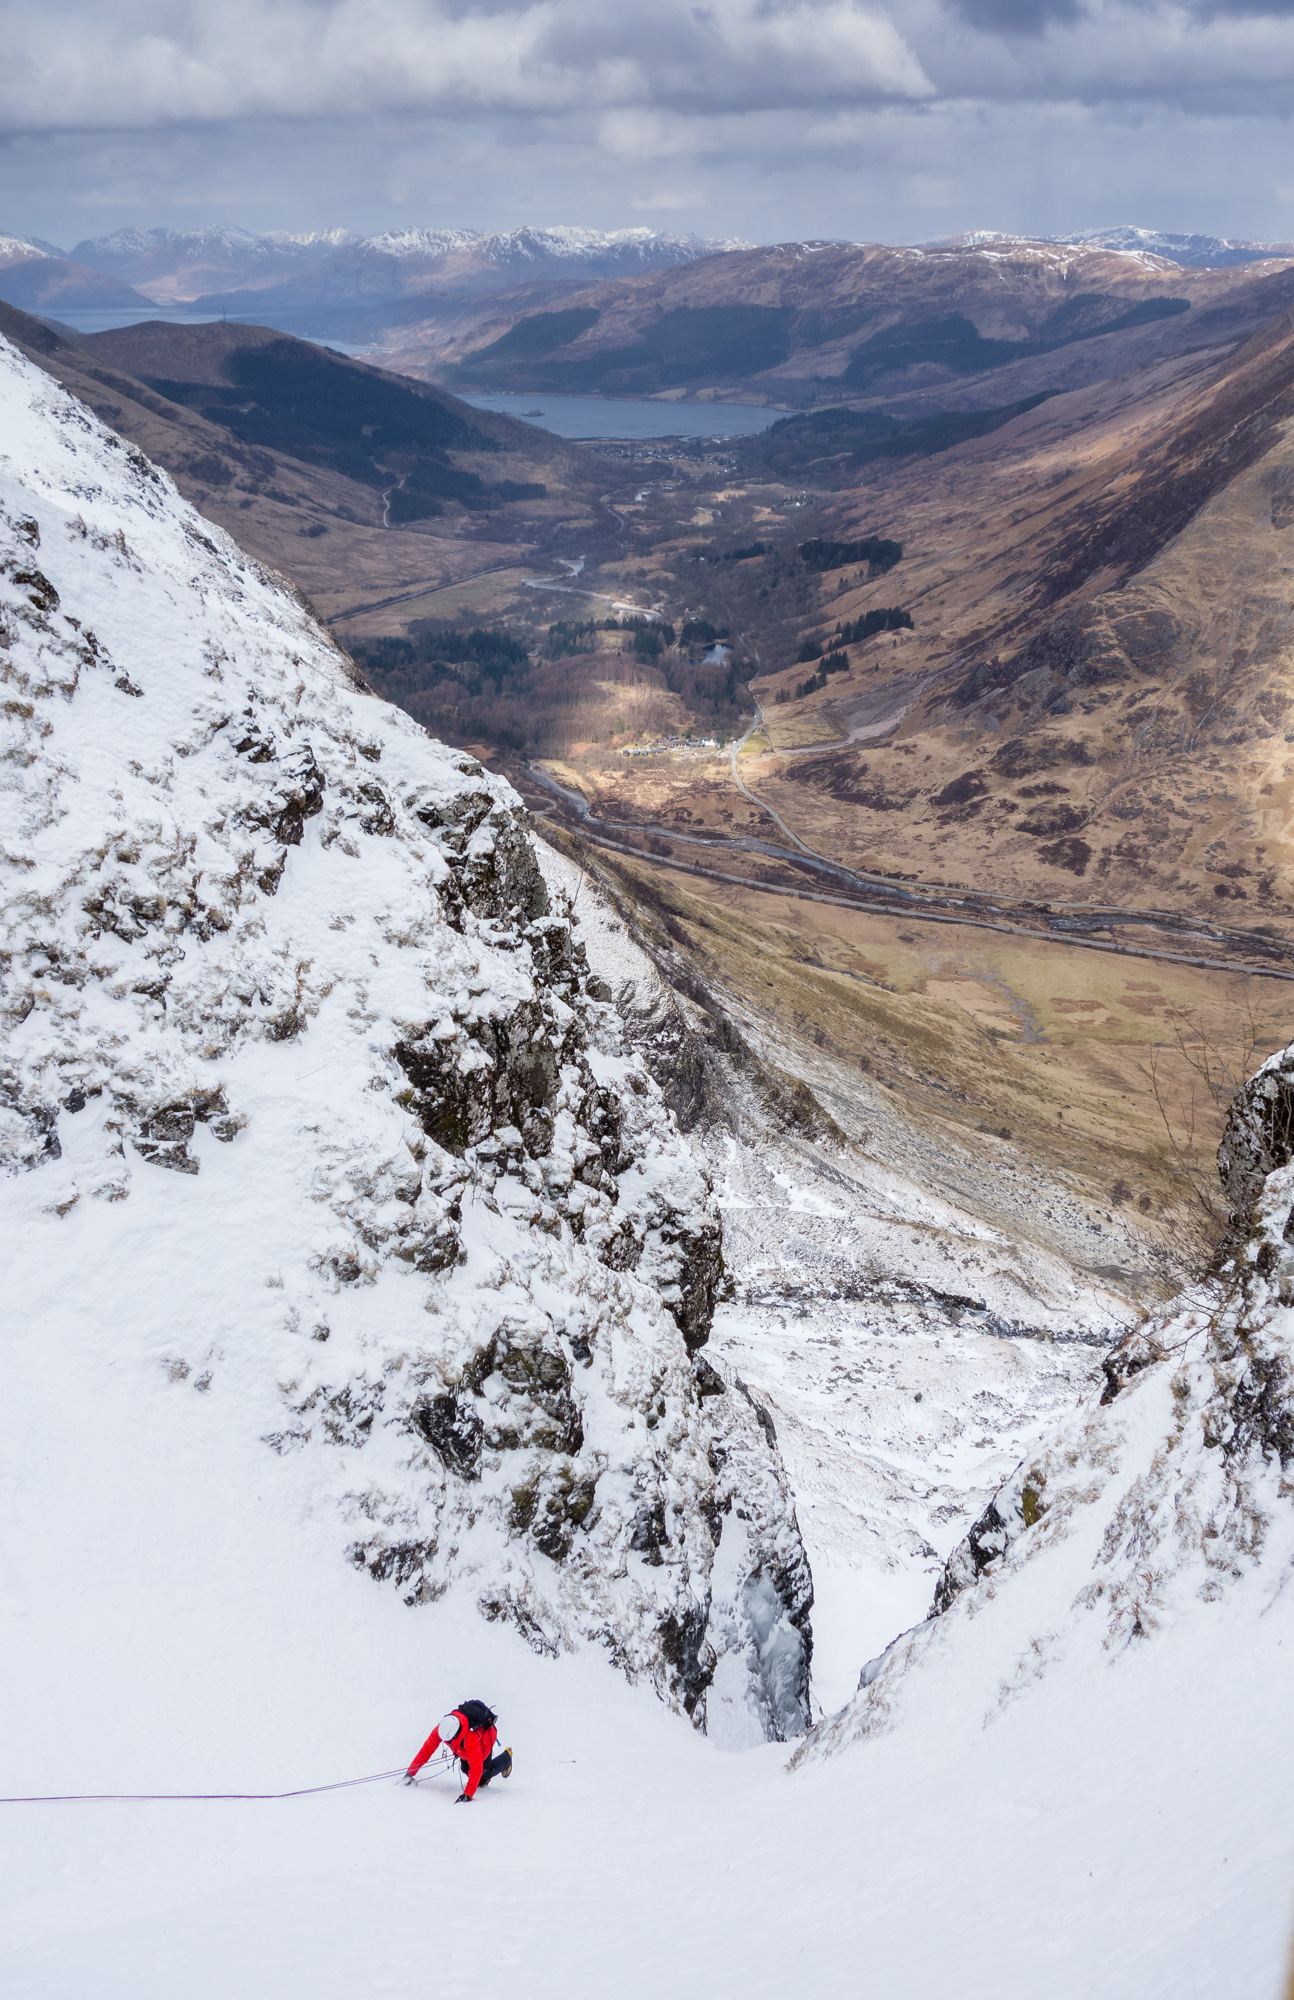 The team behind us finishing the second pitch with amazing views to Loch Leven and beyond. Photo credit: Ric Hines